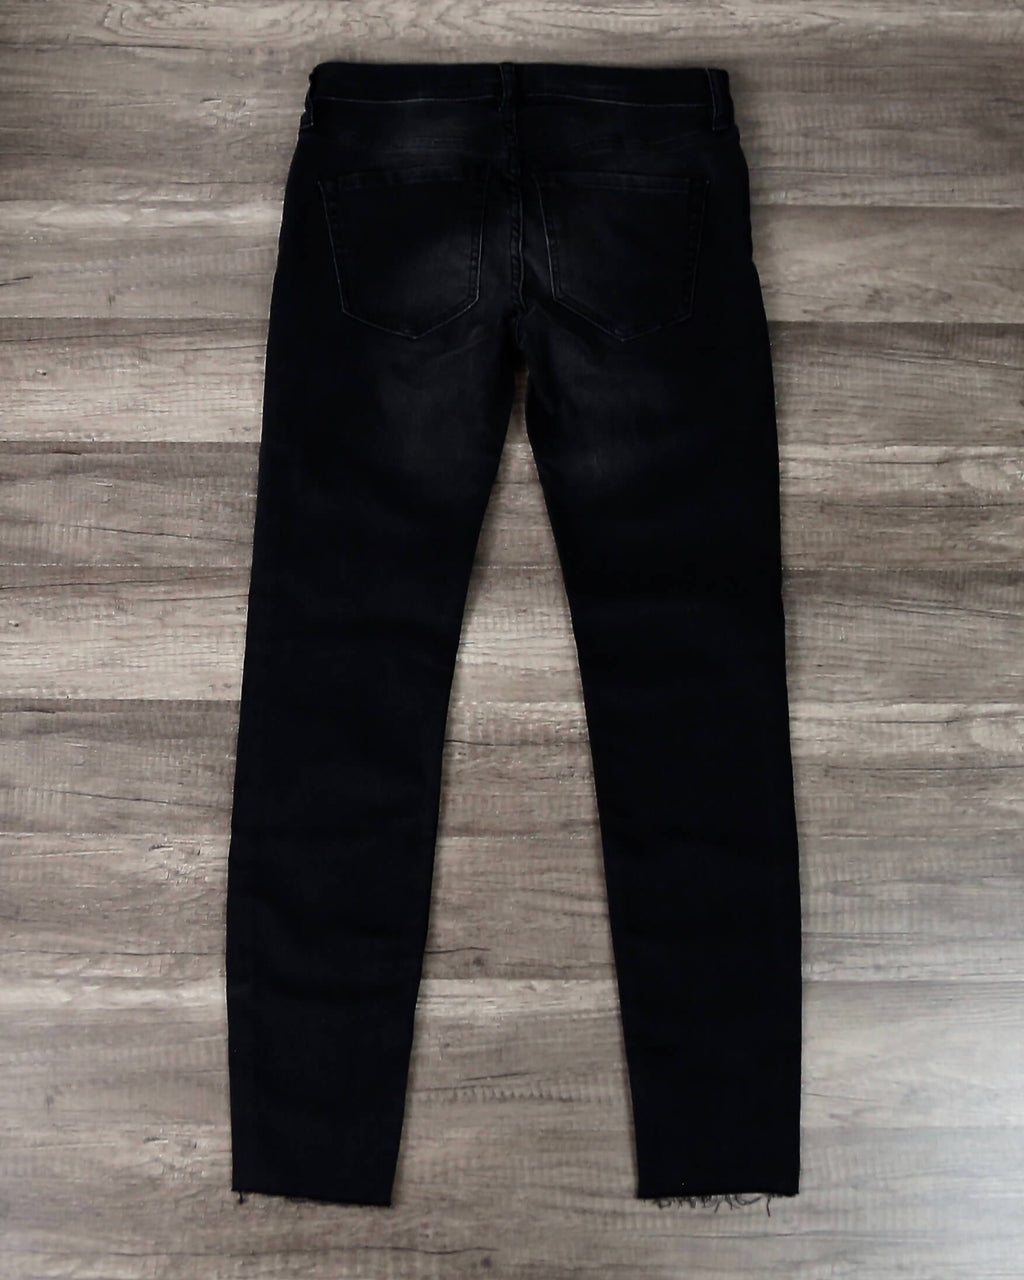 Free People - Reagan Button Front Jeans in Black